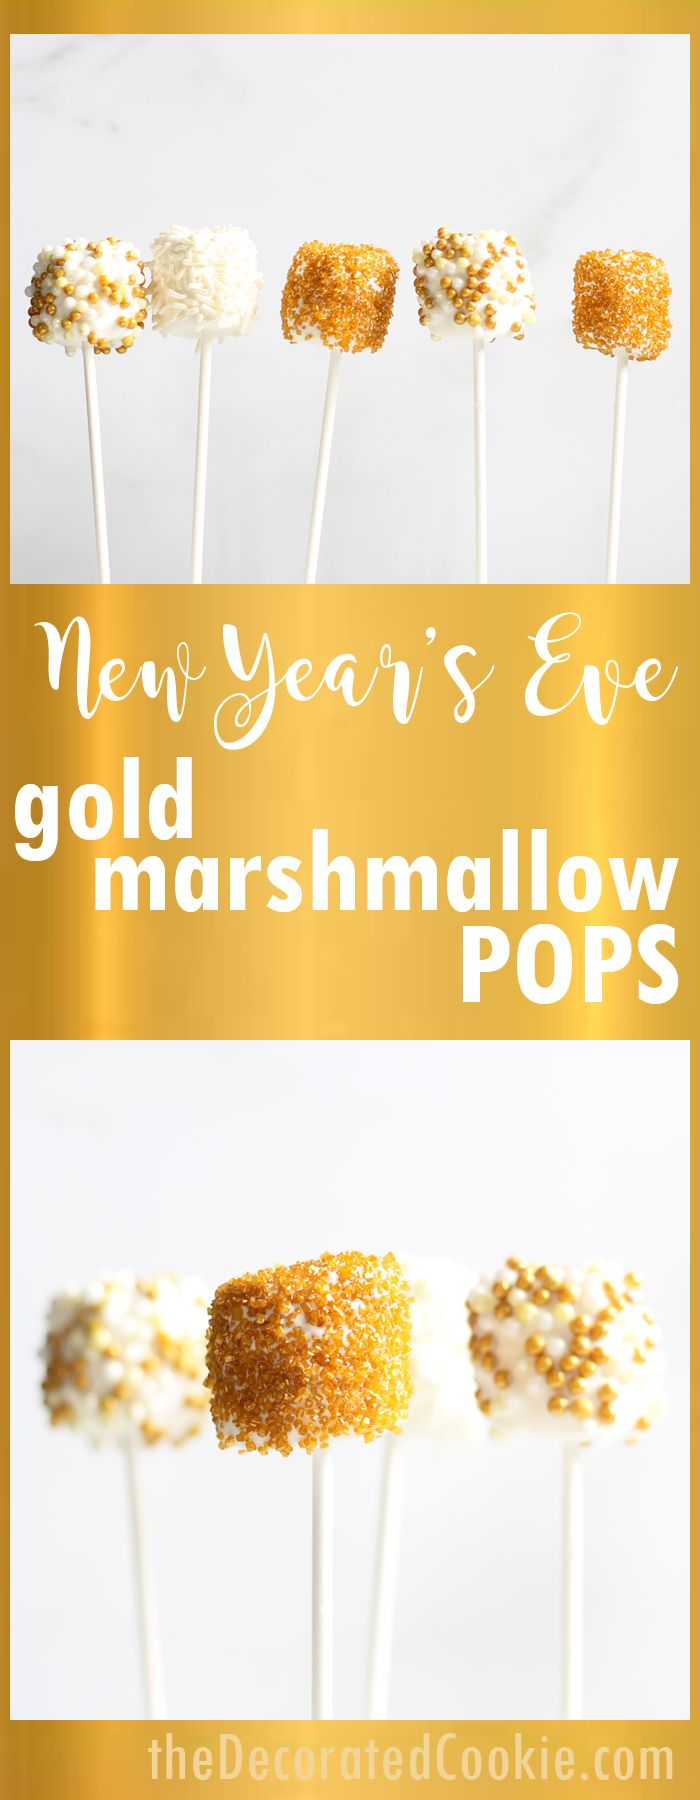 Best 25 new years eve drinks ideas on pinterest news for Fun new years eve party ideas